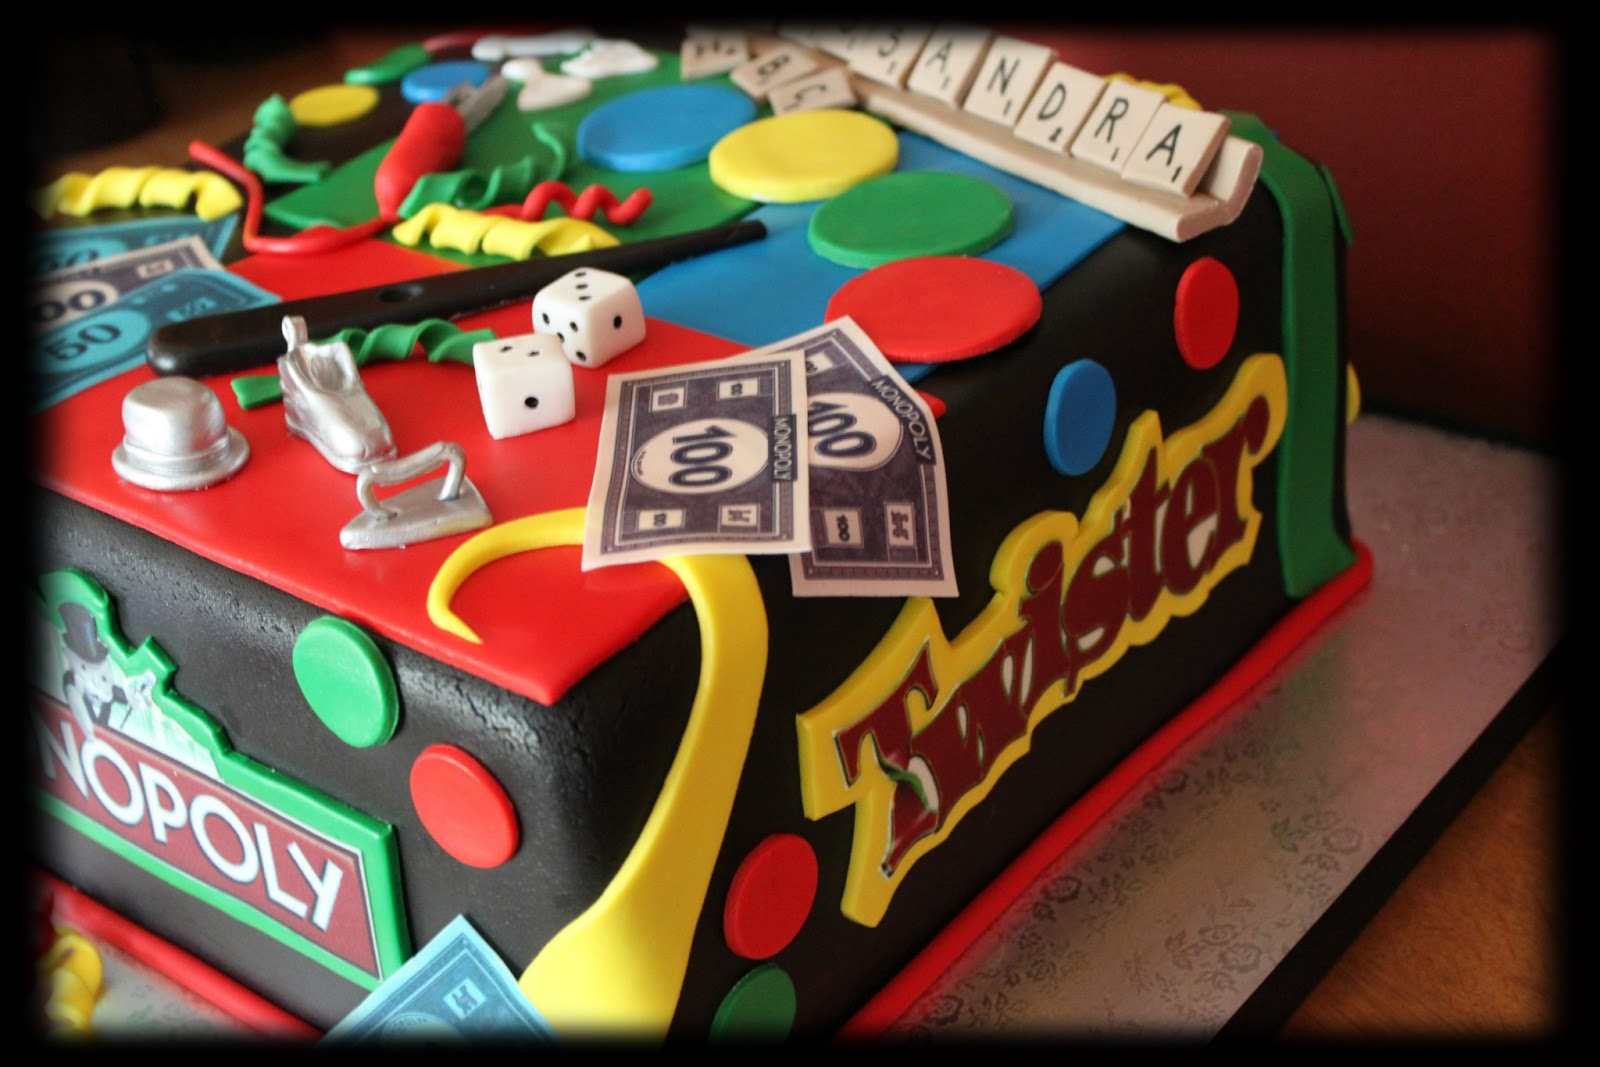 Crazy Cakes Board Game